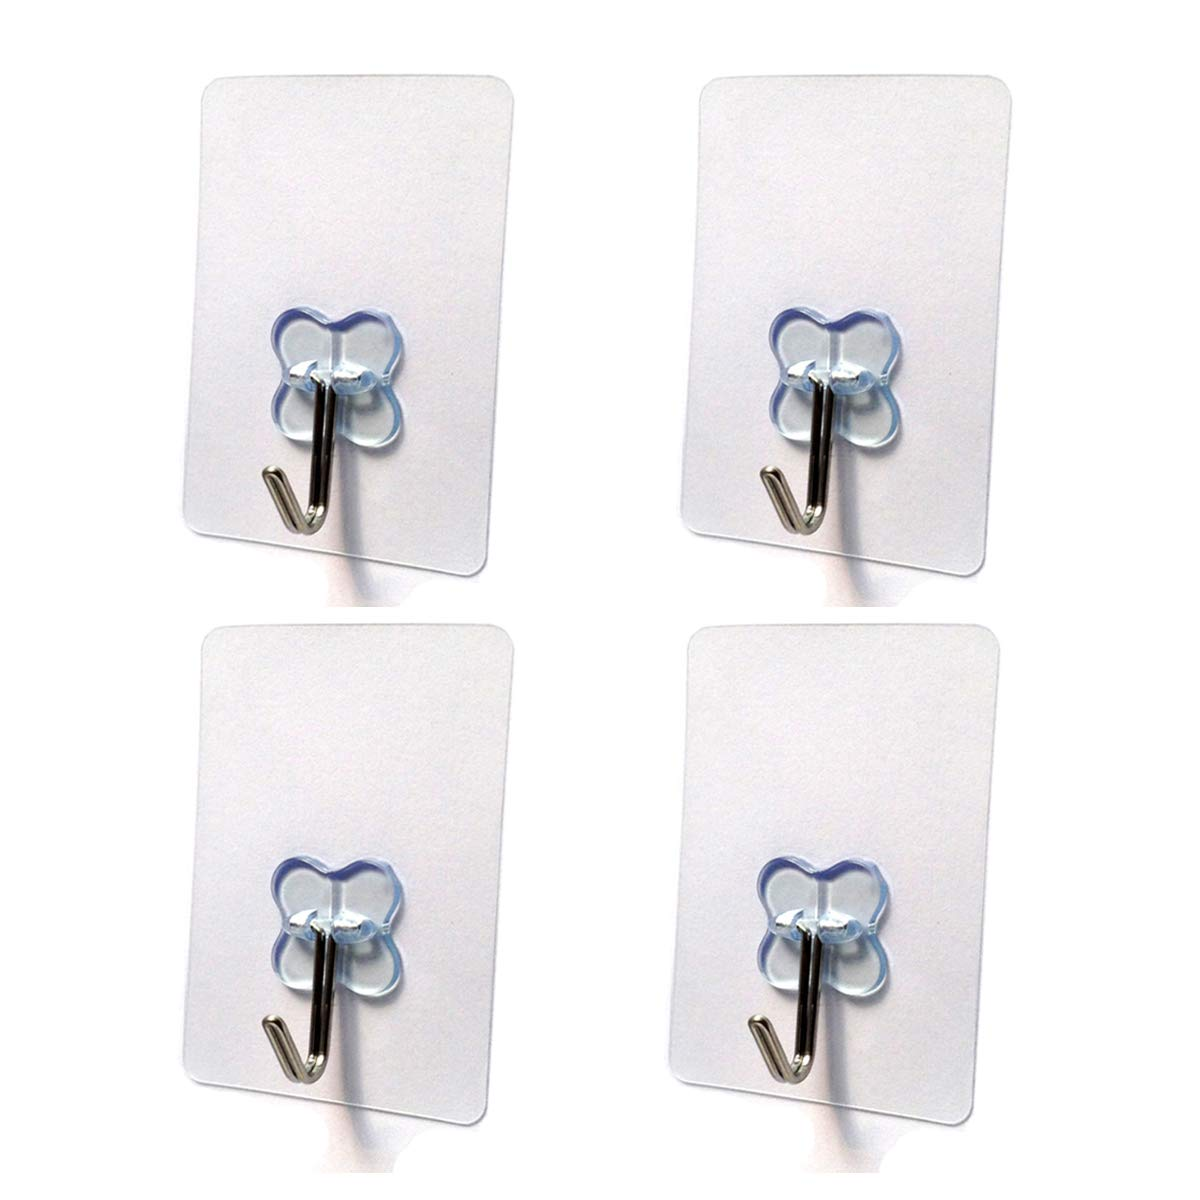 Nicedec 4 Pack 17.6 Pounds Max Heavy Duty Hooks Pack Nail Free Transparent Ceiling Hook for Home and Office No Surface Damage Wall Hooks Waterproof and Oilproof Not Recommended for Painted Wall